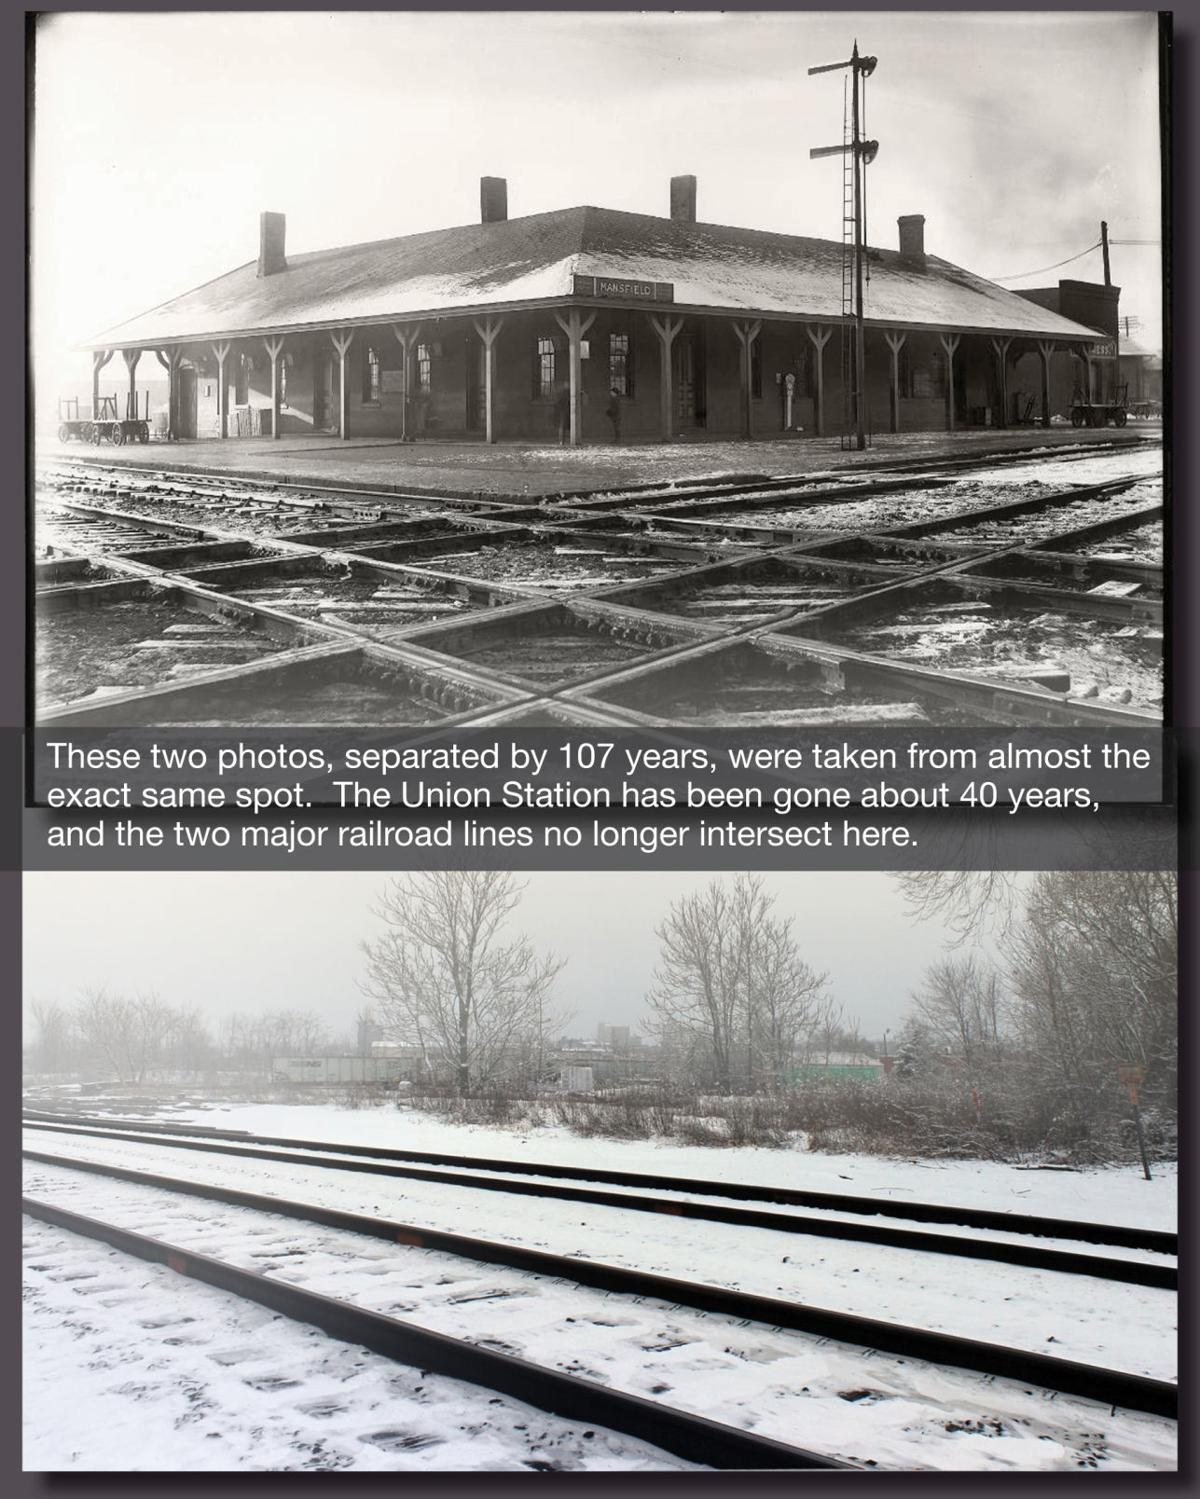 Then & Now: Union Station